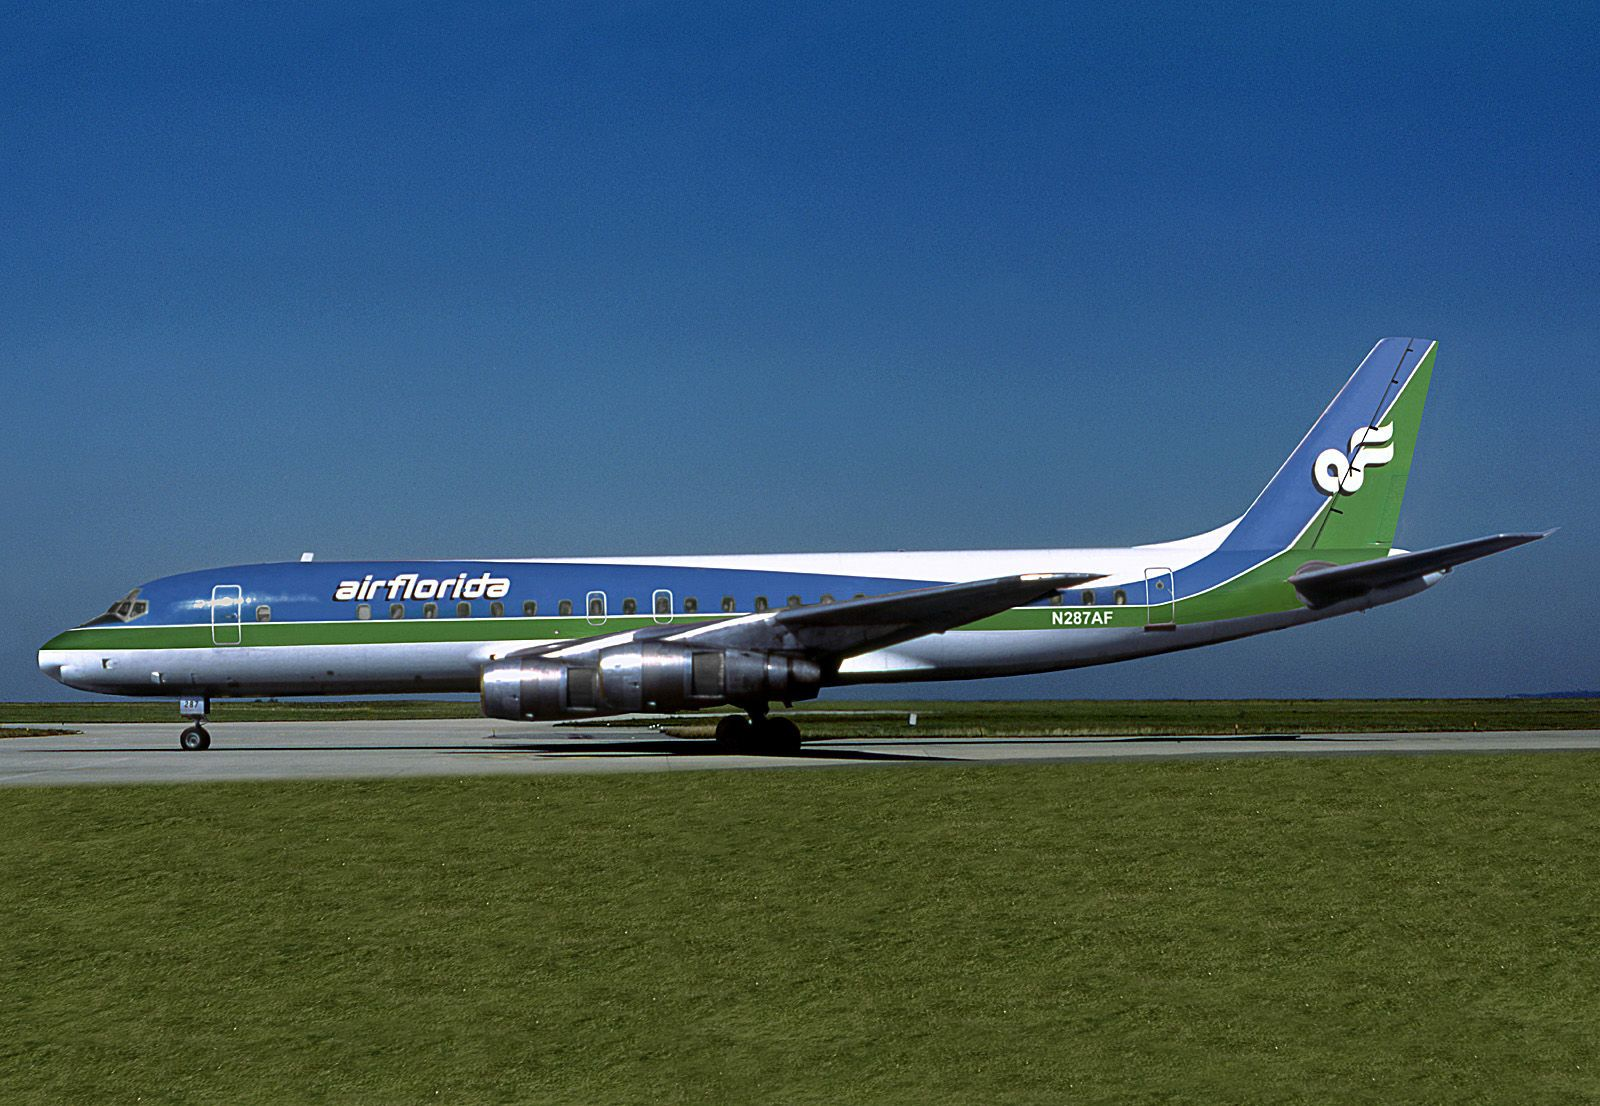 Faithful Foto-ak-boeing-707-flugzeug-airplane High Resilience Motive